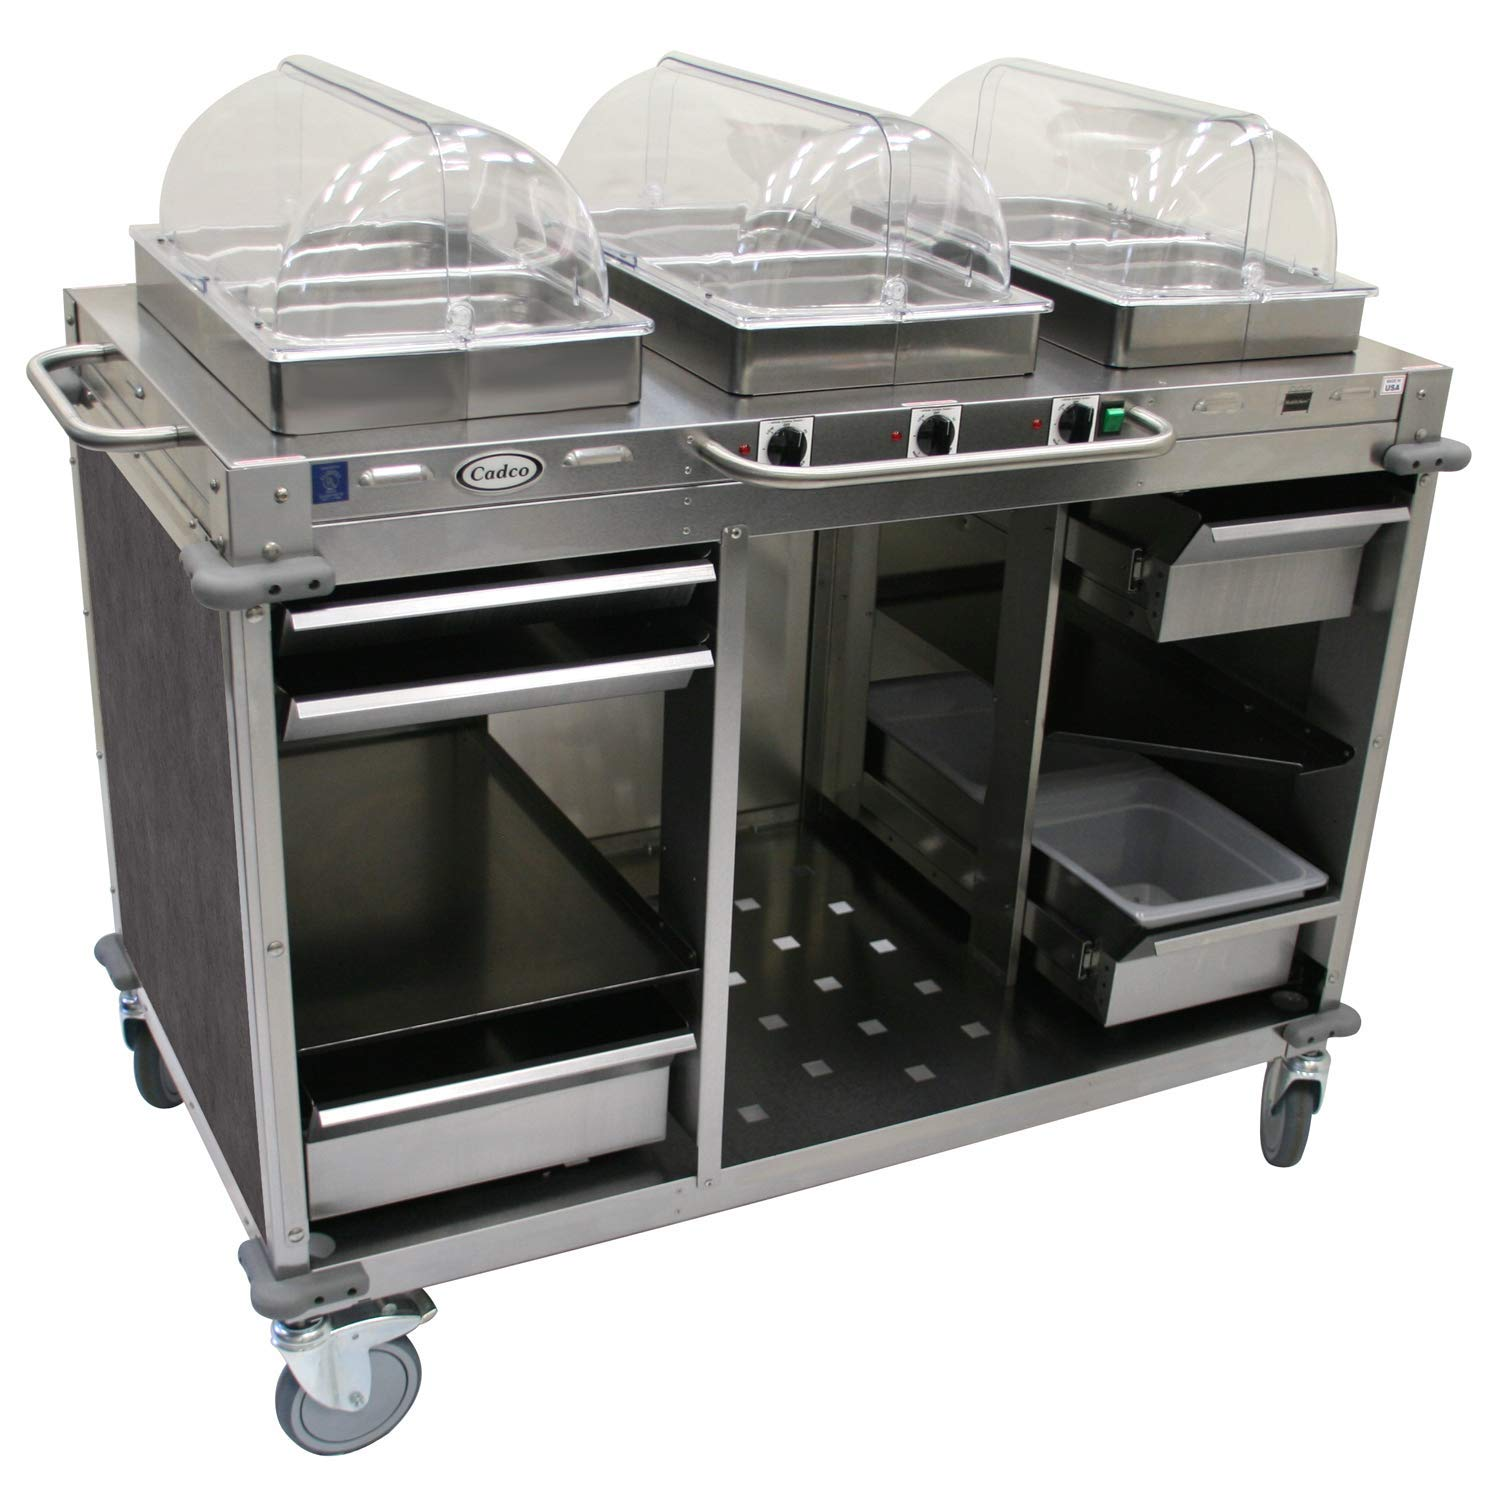 "Mobile Hot Buffet Cart Size: 49"" H x 55.5"" W x 28.75"" D, Color: Mission Smoke Grey"